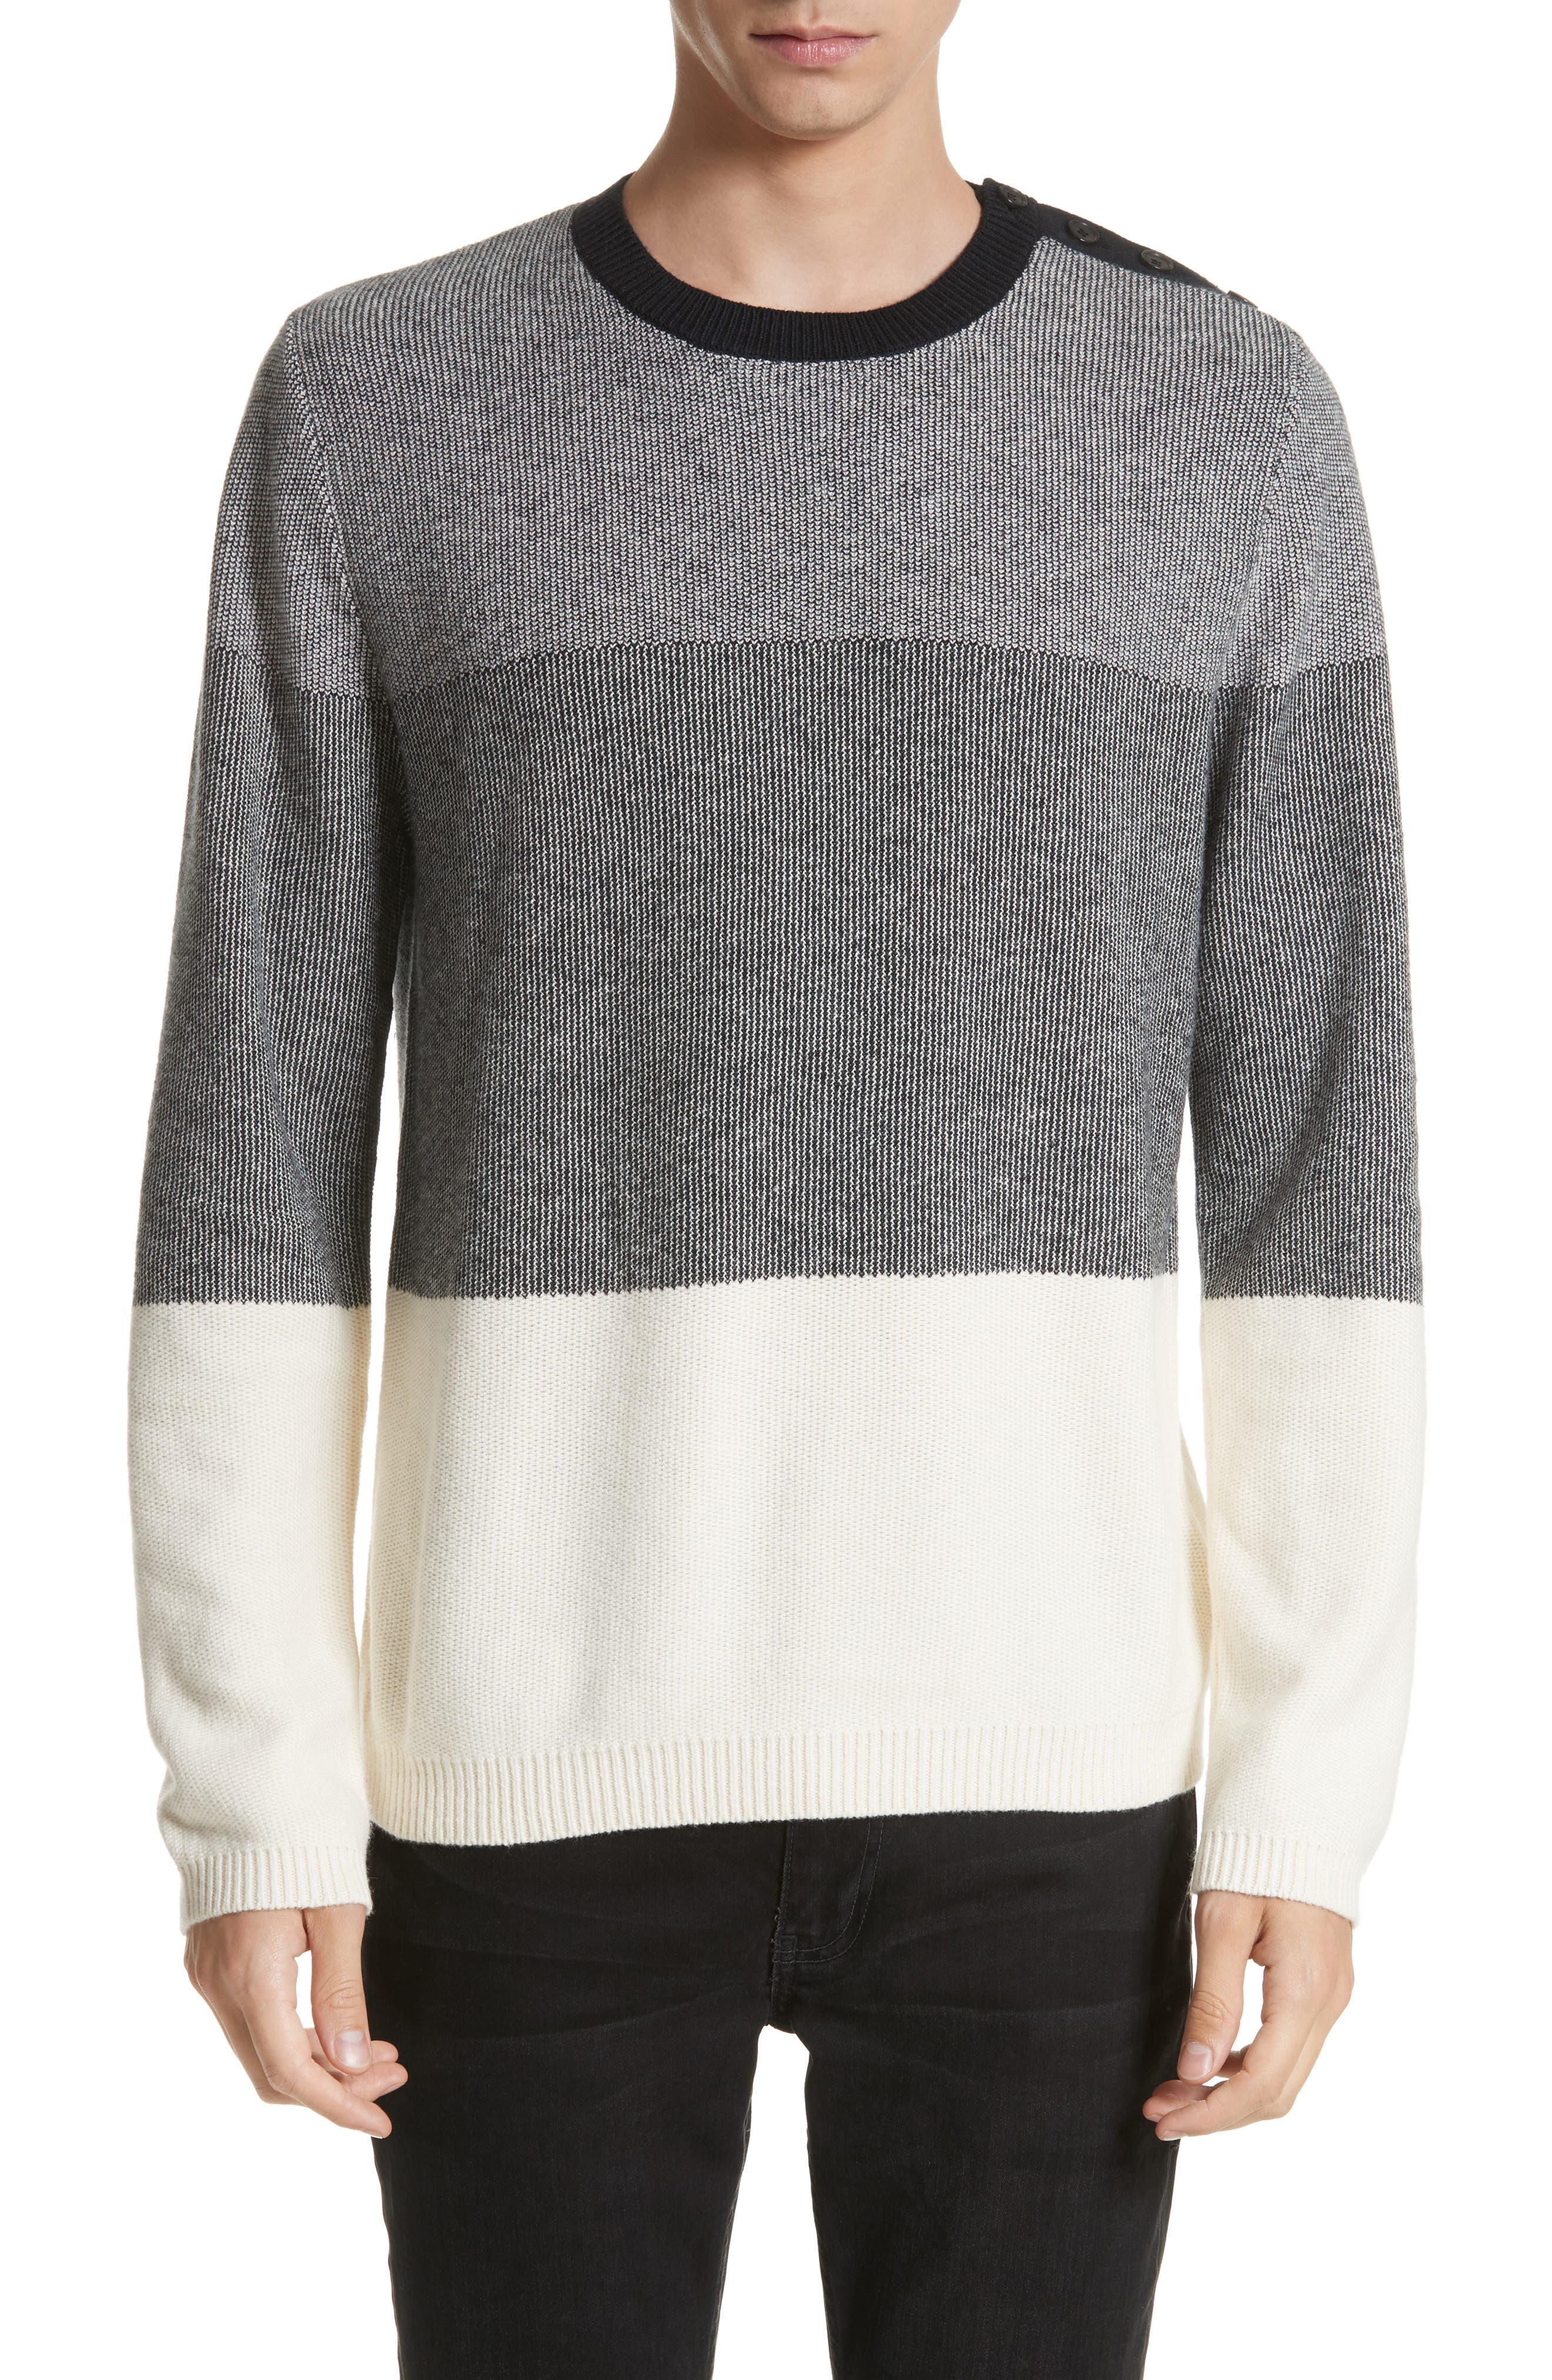 Alternate Image 1 Selected - PS Paul Smith Colorblock Crewneck Sweater